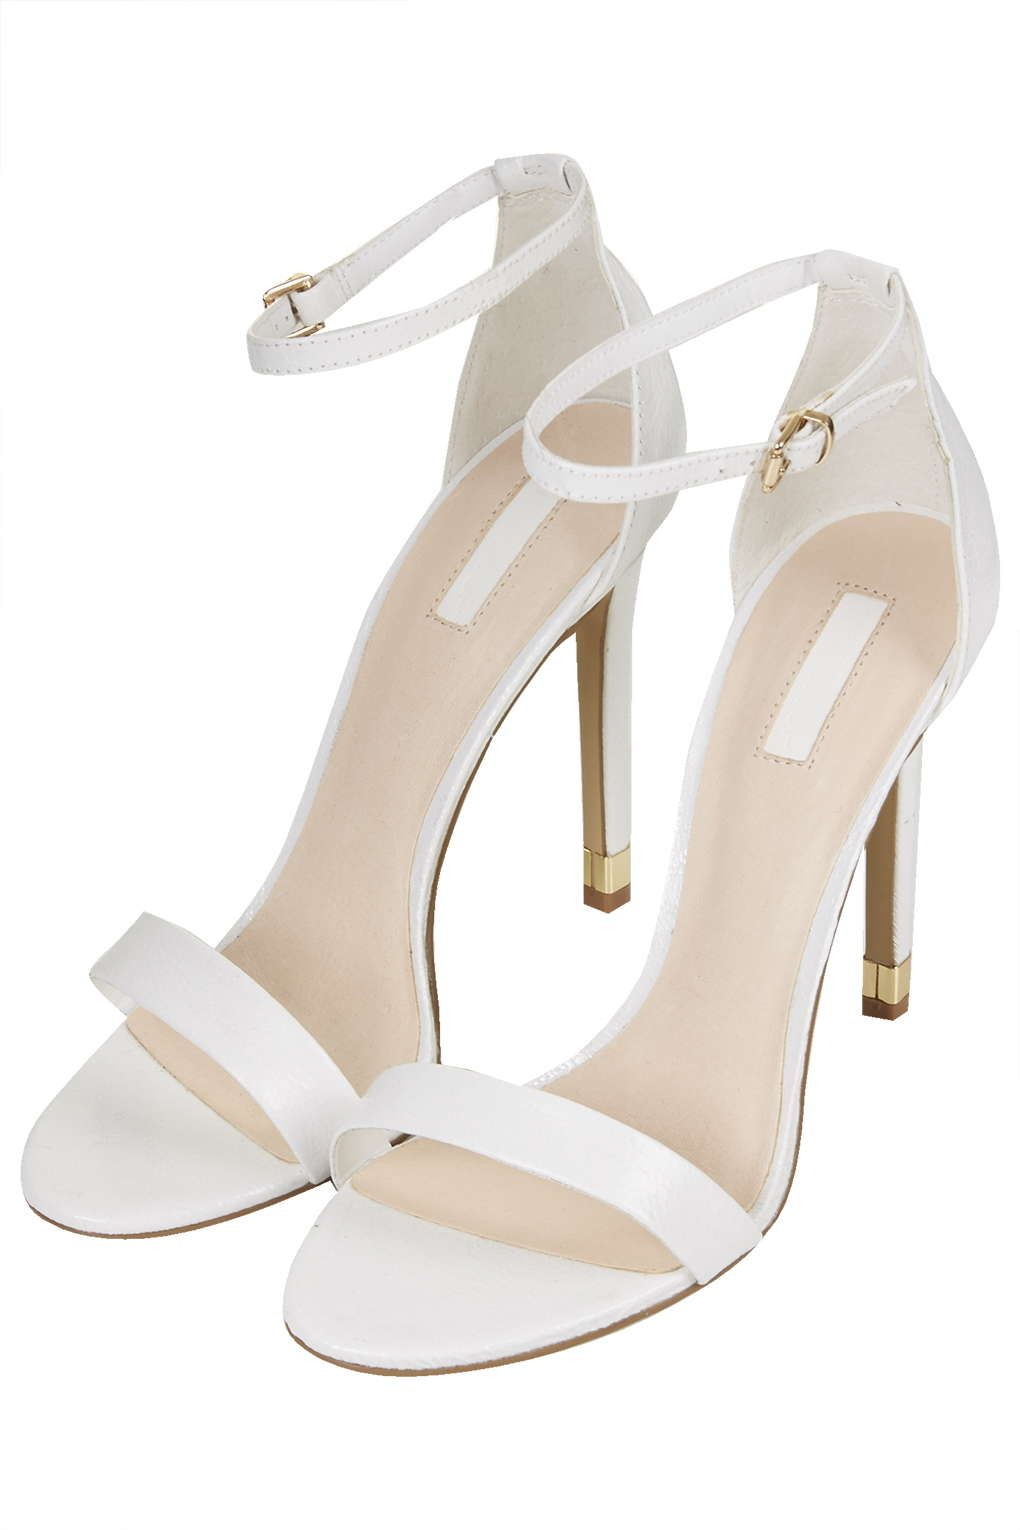 Topshop RUBY Strappy High Sandals in White, £46